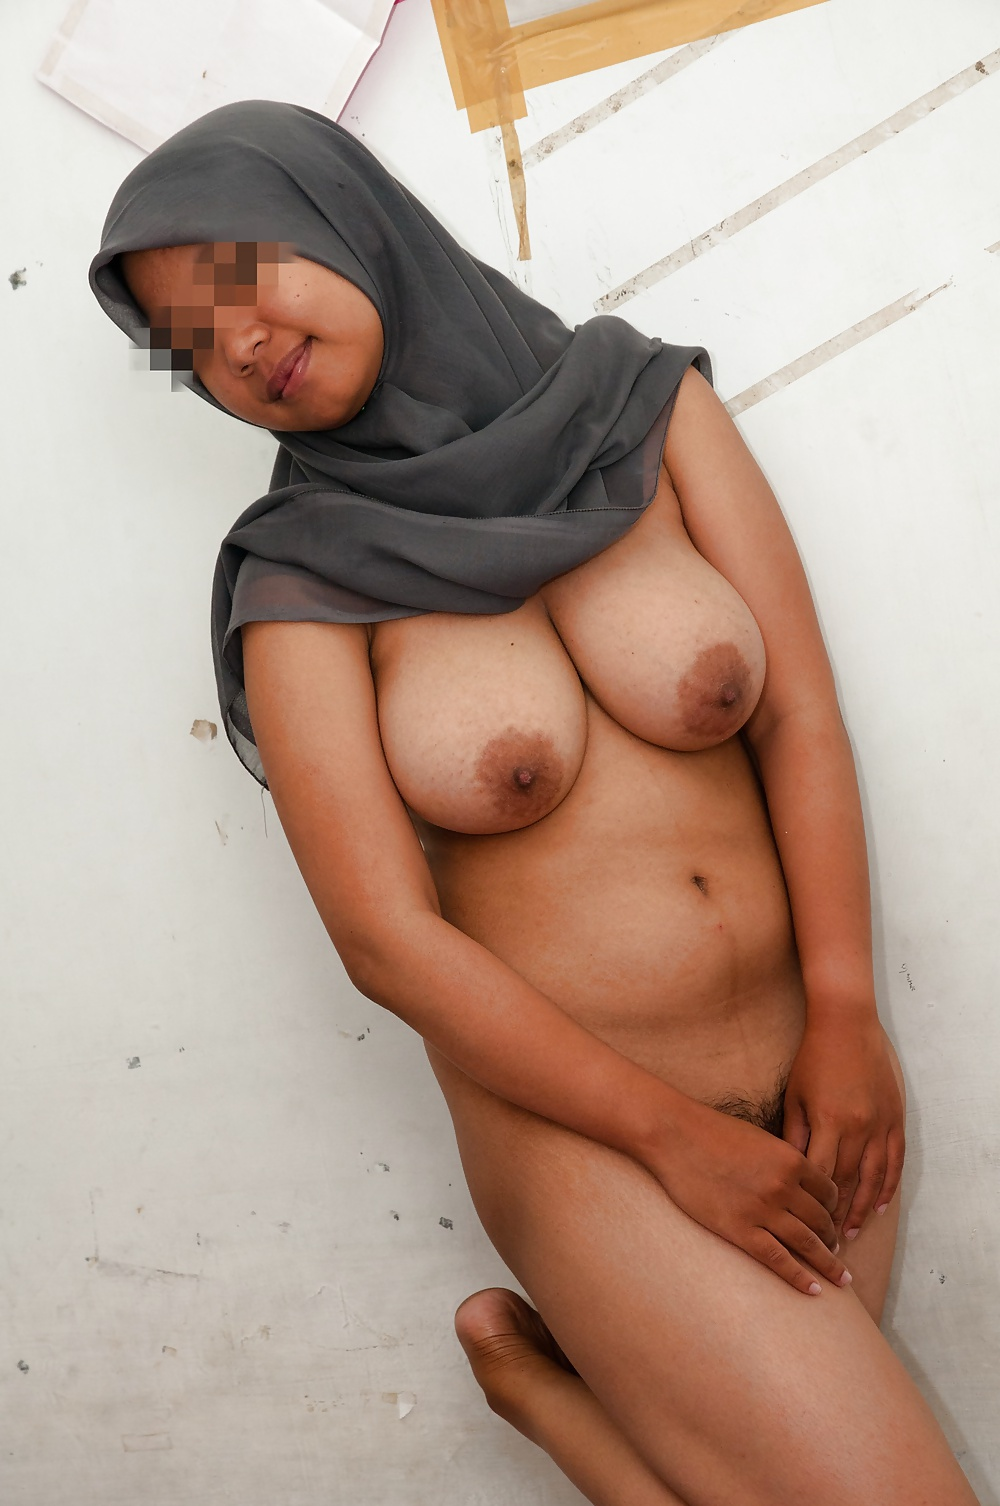 Nude indonesian muslim girl, raven having sex with robin